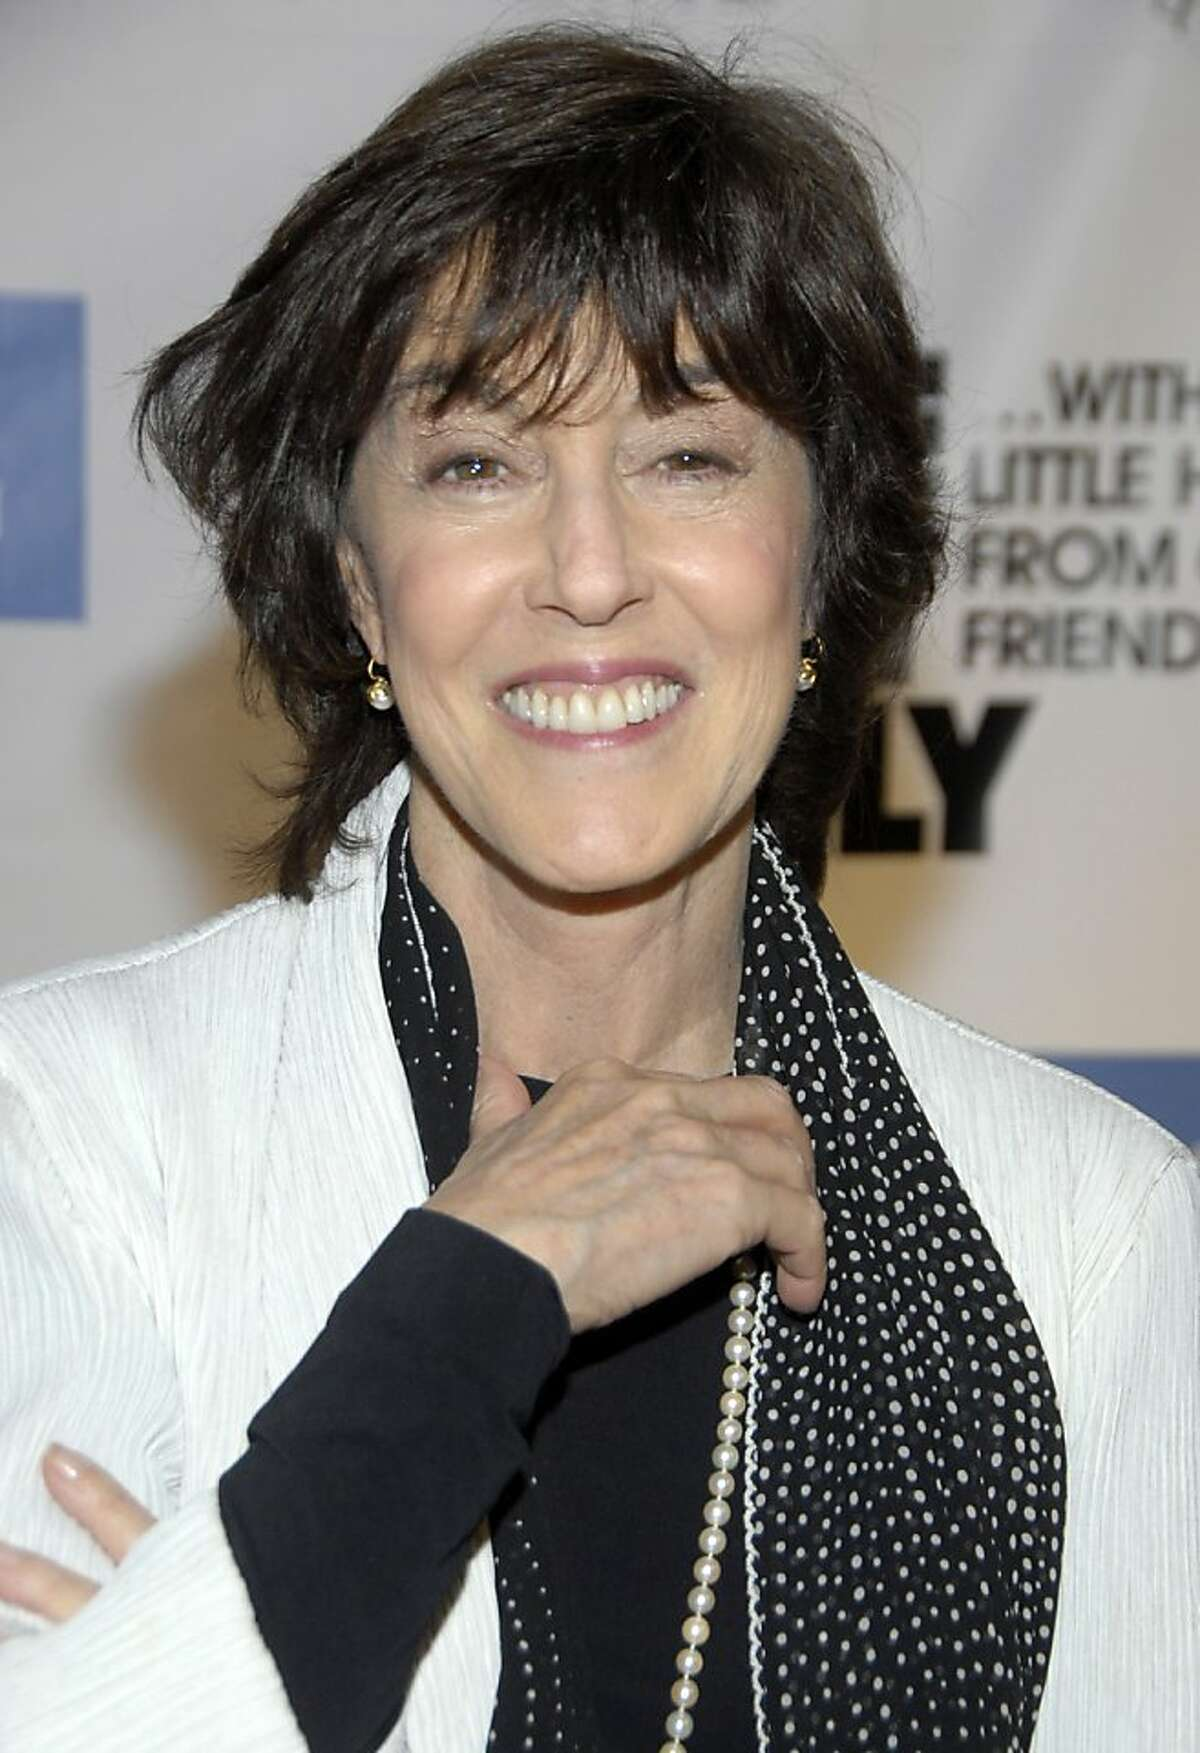 """FILE - In this Dec. 2, 2008 file photo, director Nora Ephron poses on the press line at """"One Night Only...With a Little Help From Our Friends"""" benefiting UCLA School of Theater, Film and Television at Royce Hall in Los Angeles. Publisher Alfred A. Knopf confirmed Tuesday, June 26, 2012, that author and filmmaker Nora Ephron died Tuesday of leukemia. (AP Photo/Dan Steinberg, file)"""